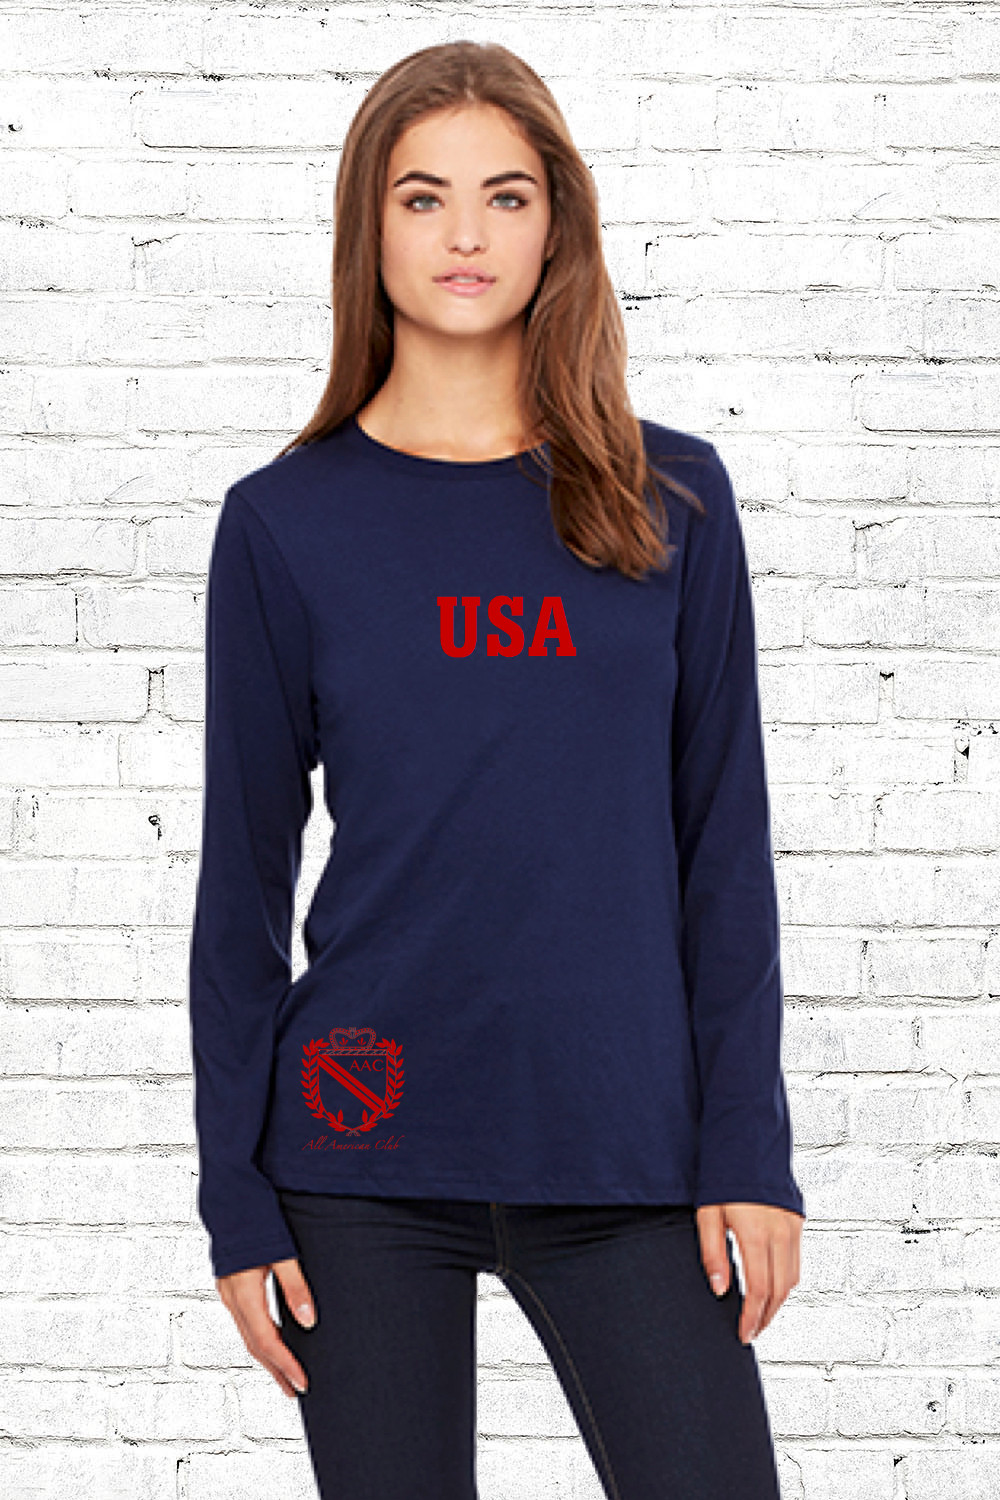 AAC USA Shirt - $42.00Homegrown. Homespun. Homemade. Right here in the USA. This is the softest, most durable cotton you will ever touch.Unisex. 100% CottonClassic fit.Available in: Navy with RedNavy with WhiteMade in the USA.BUY NOW